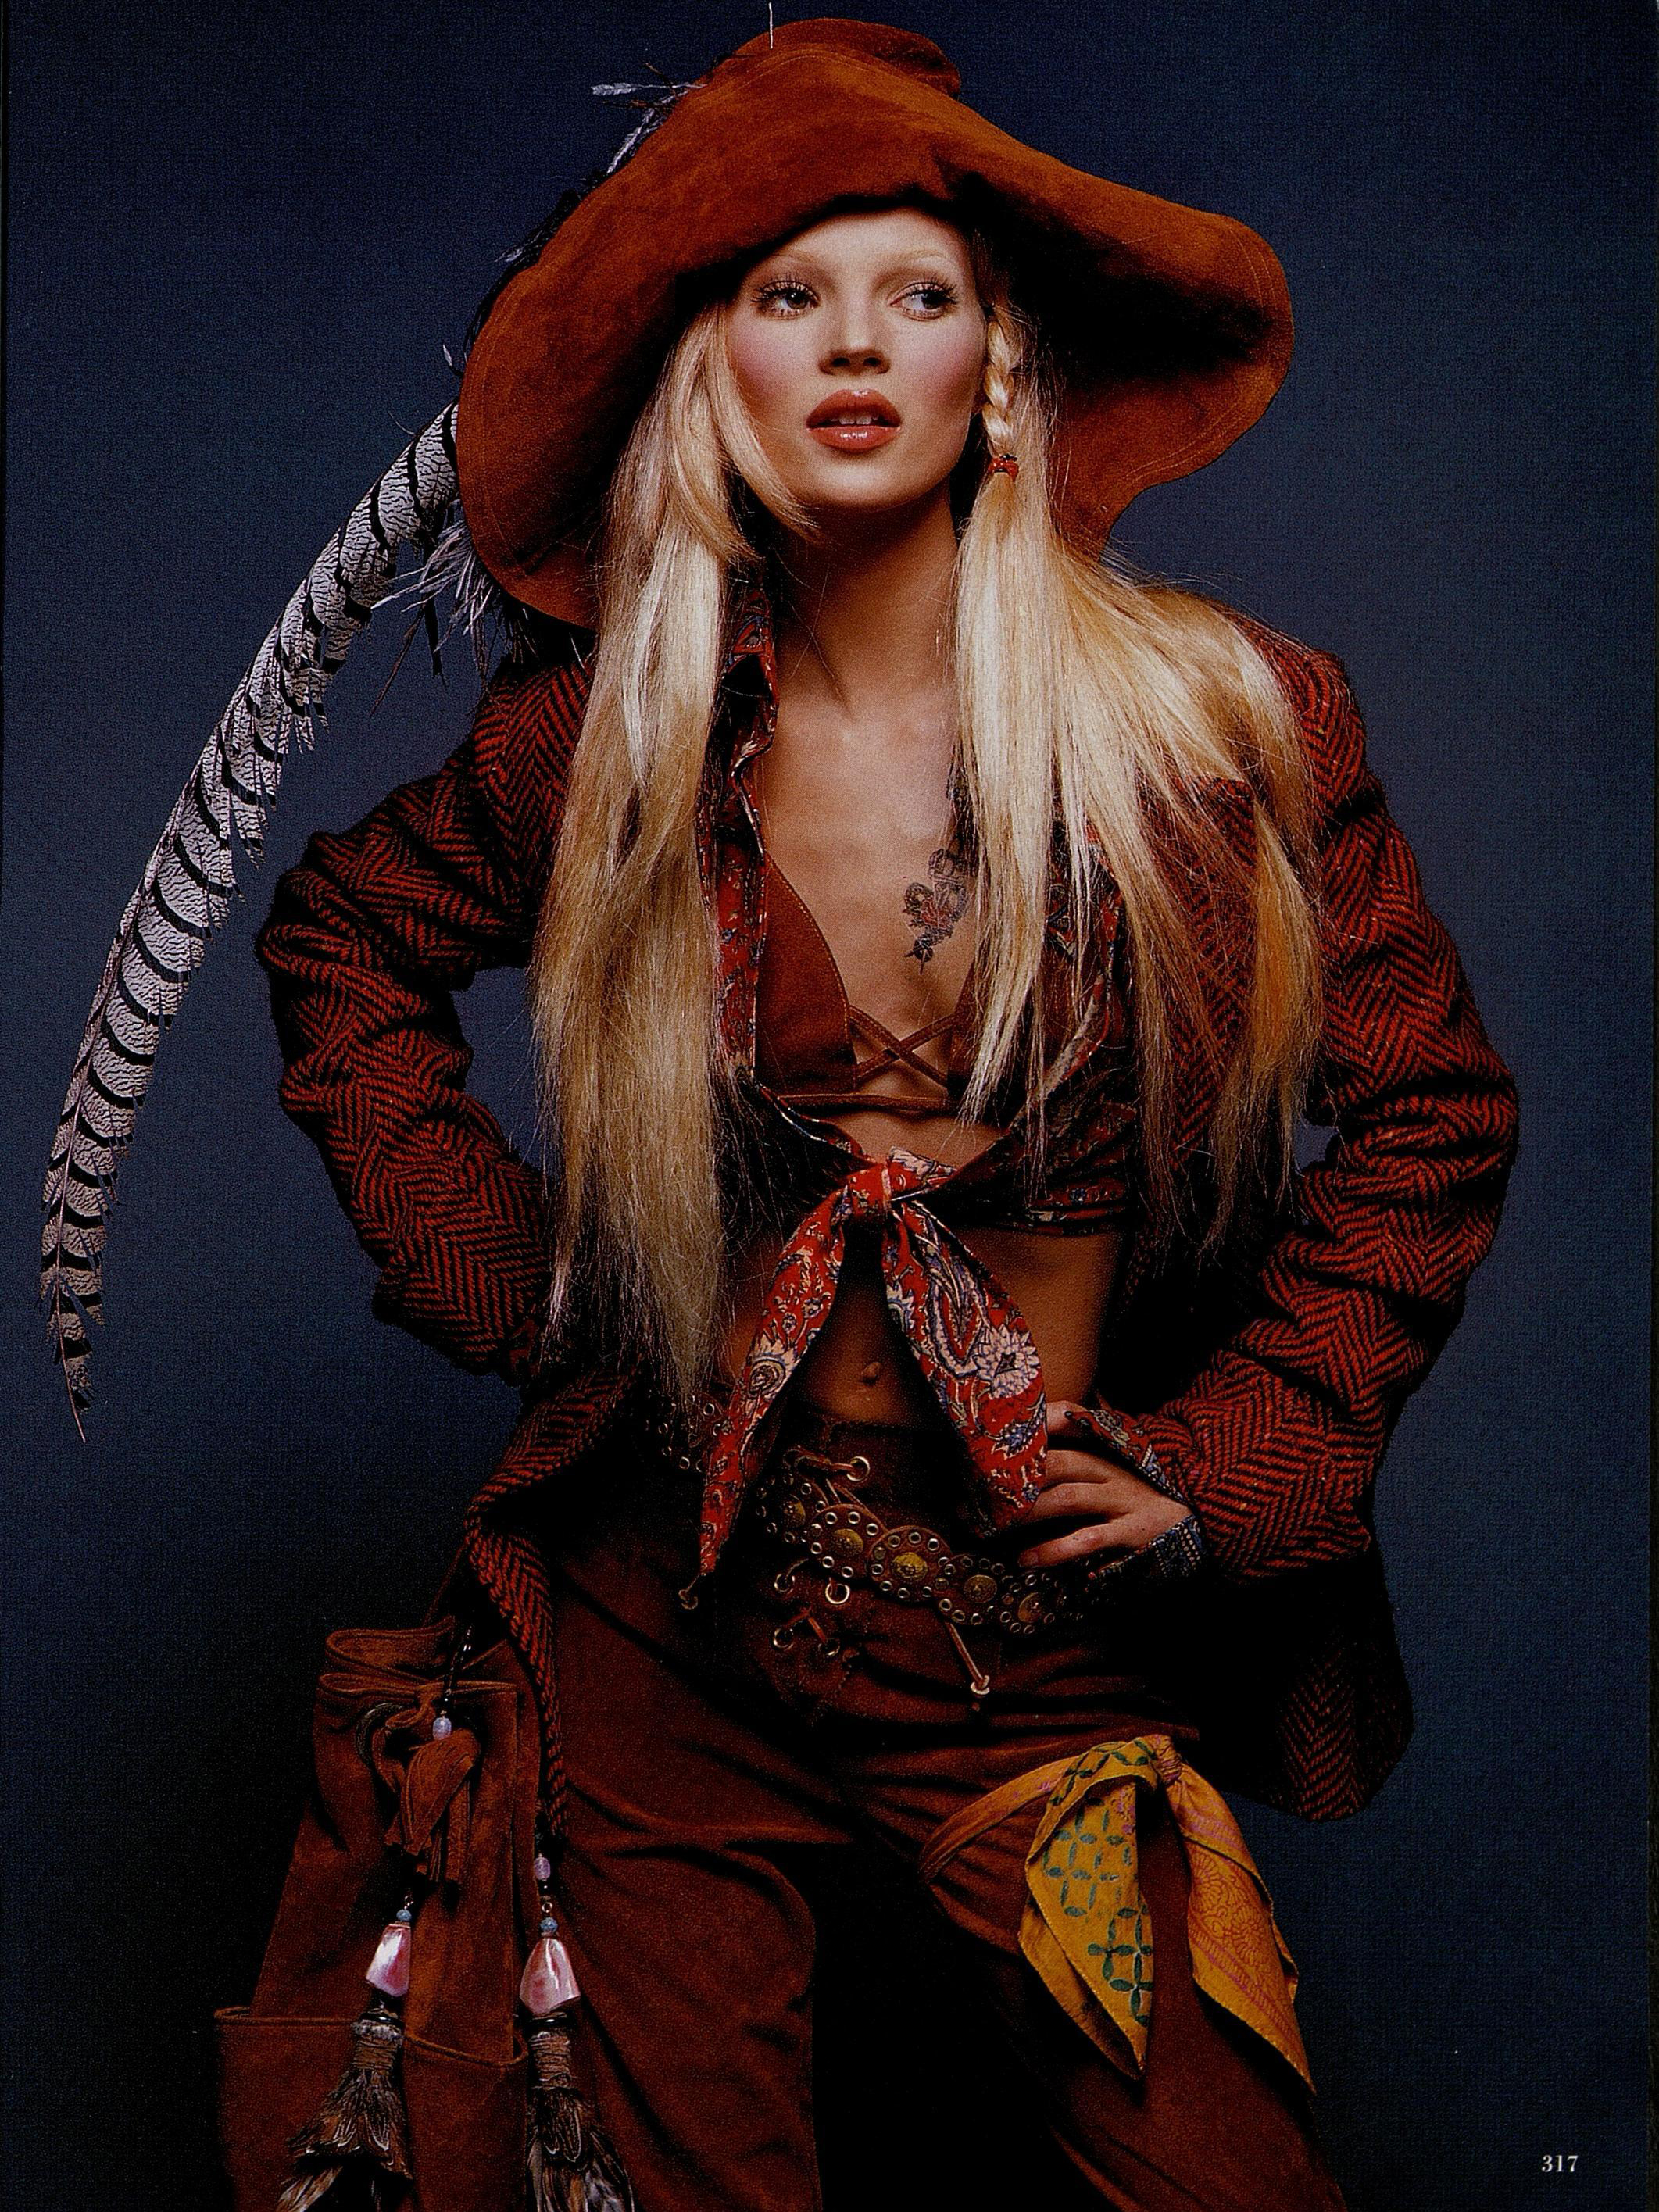 Kate Moss in Sui's pirate f/w '92 collection. Photographed by Patrick Demarchelier for Harper's Bazaar, September 1992.